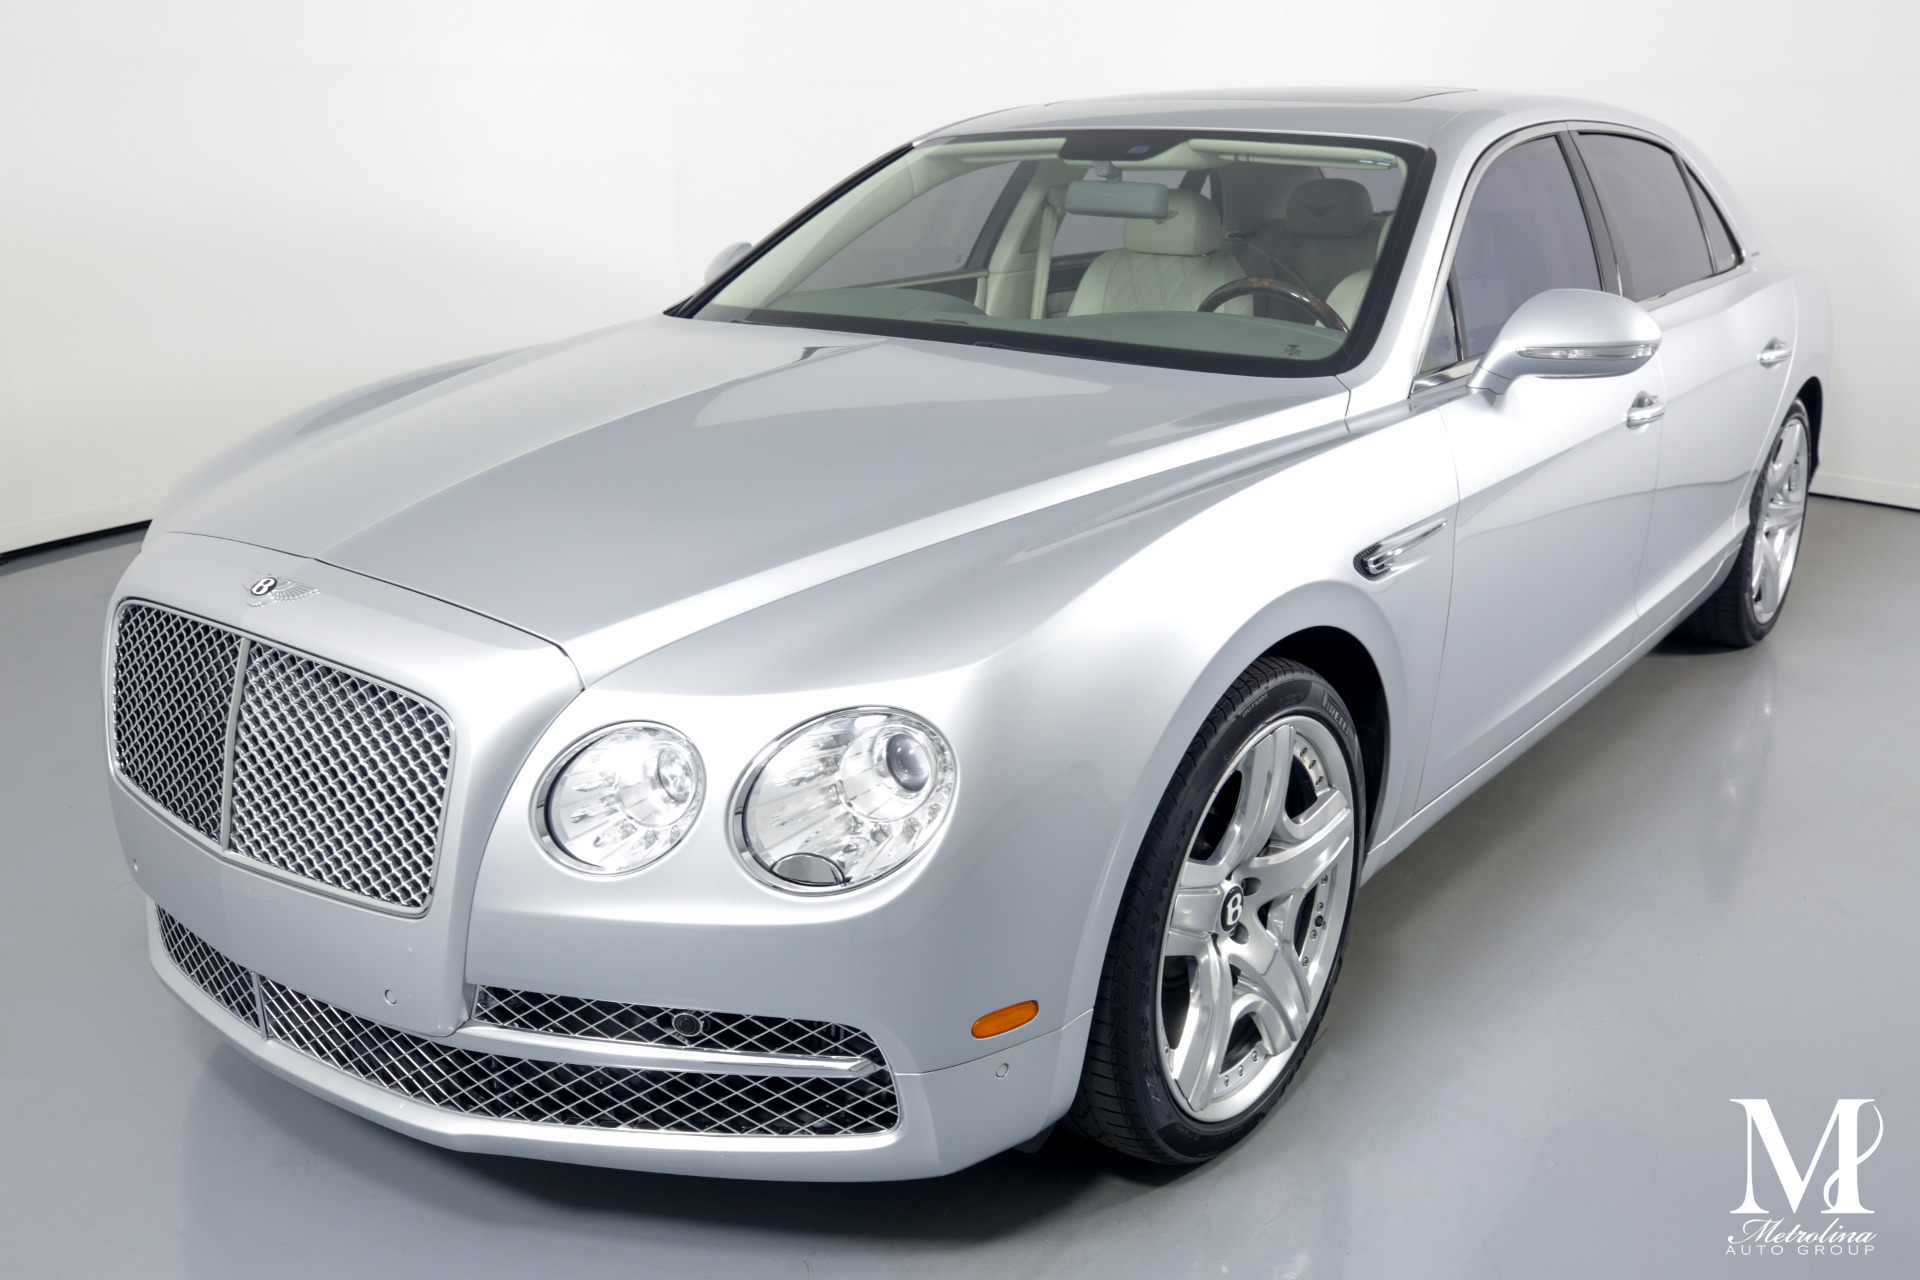 Used 2014 Bentley Flying Spur for sale $99,996 at Metrolina Auto Group in Charlotte NC 28217 - 4